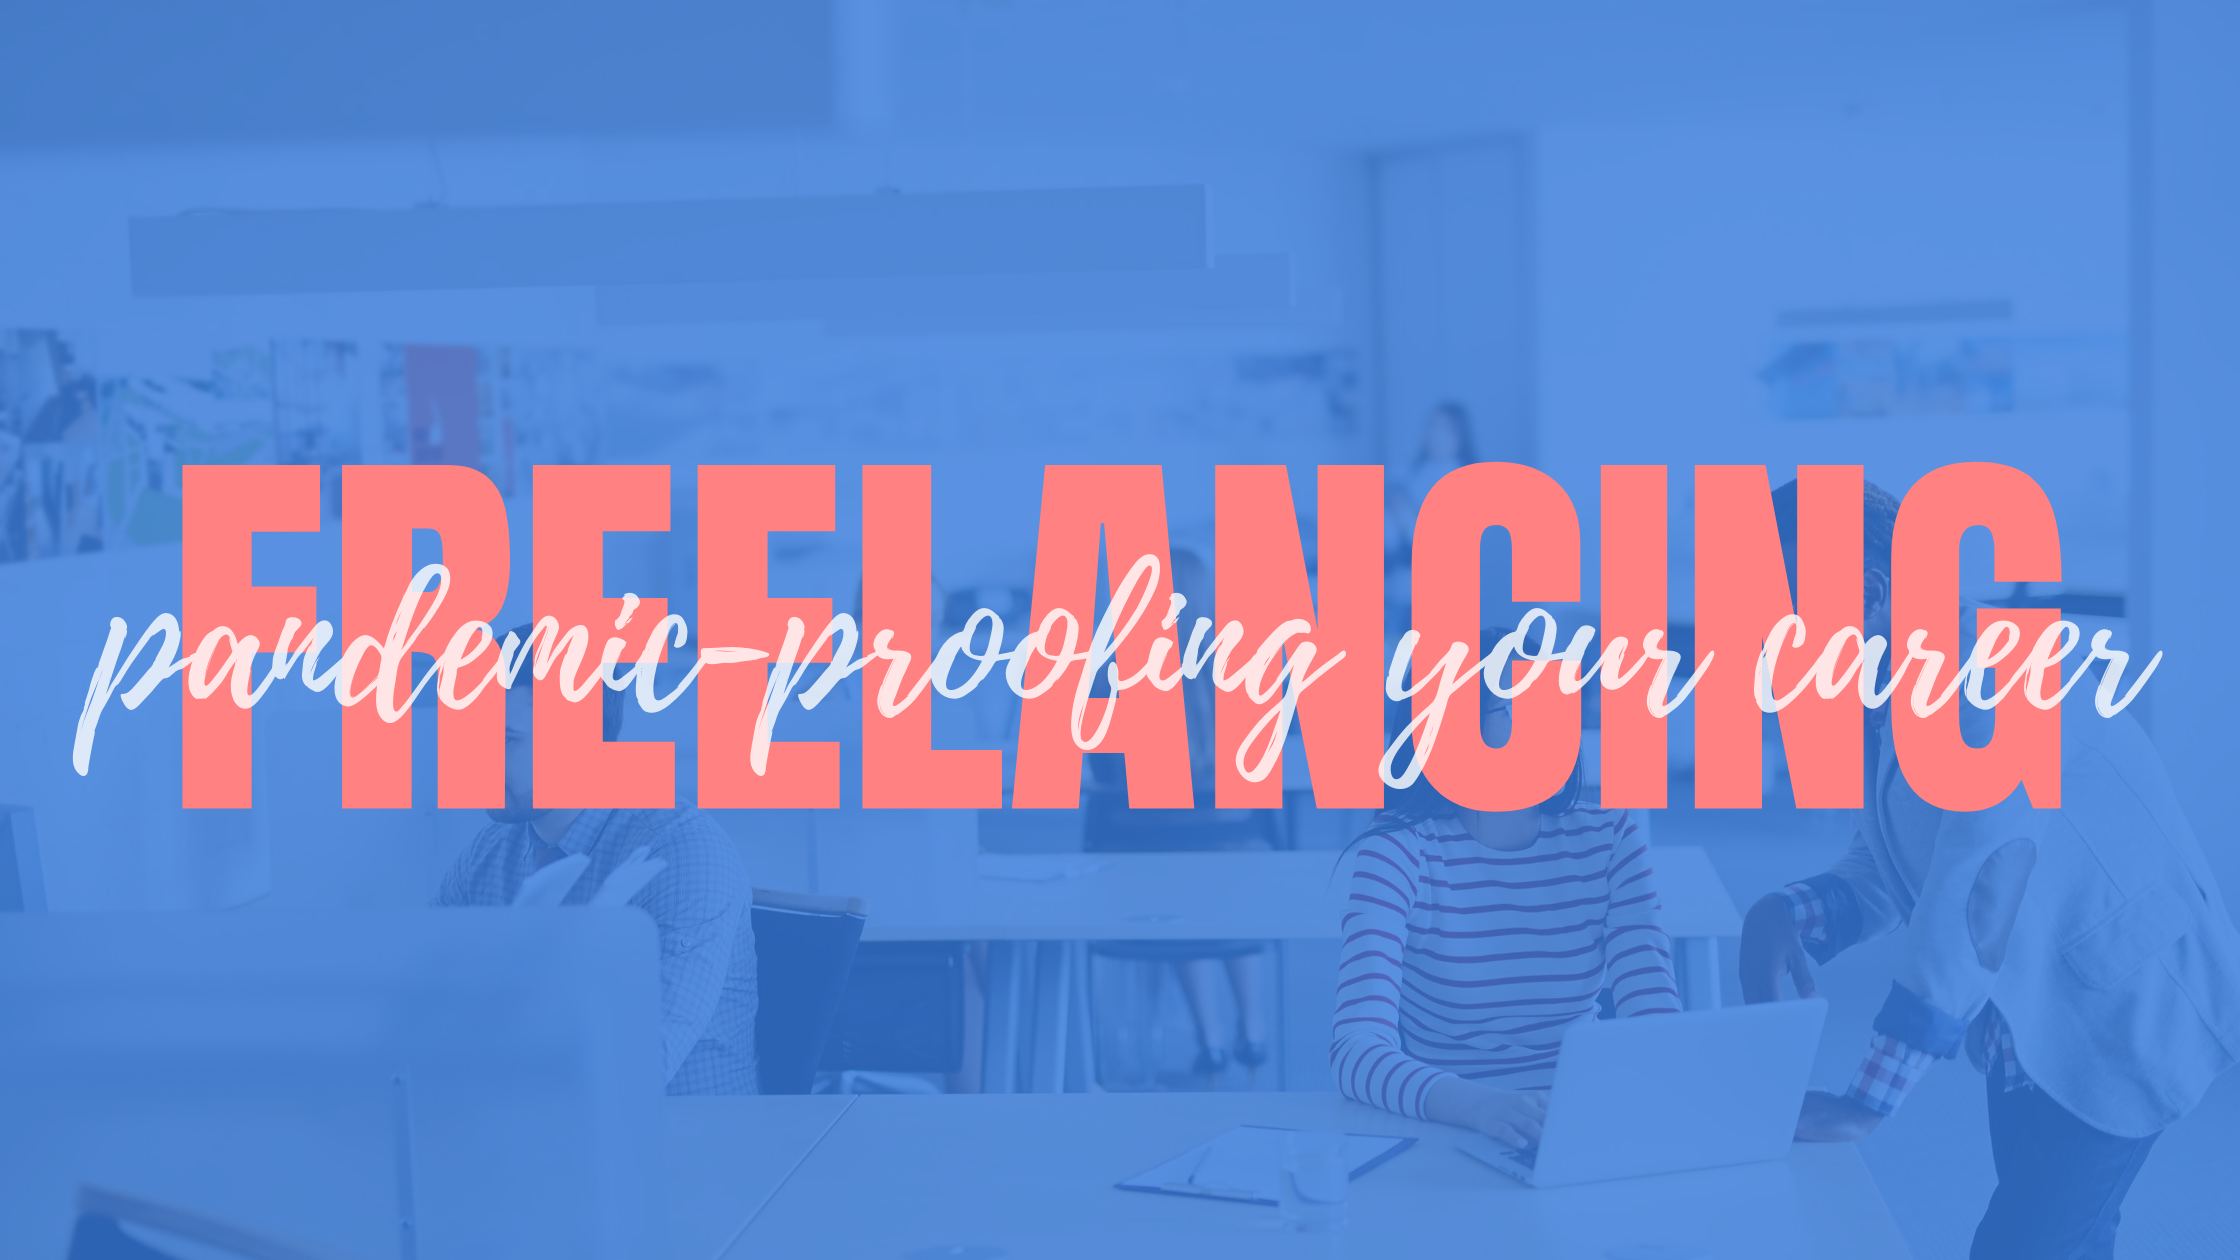 freelancing: pandemic proofing your business